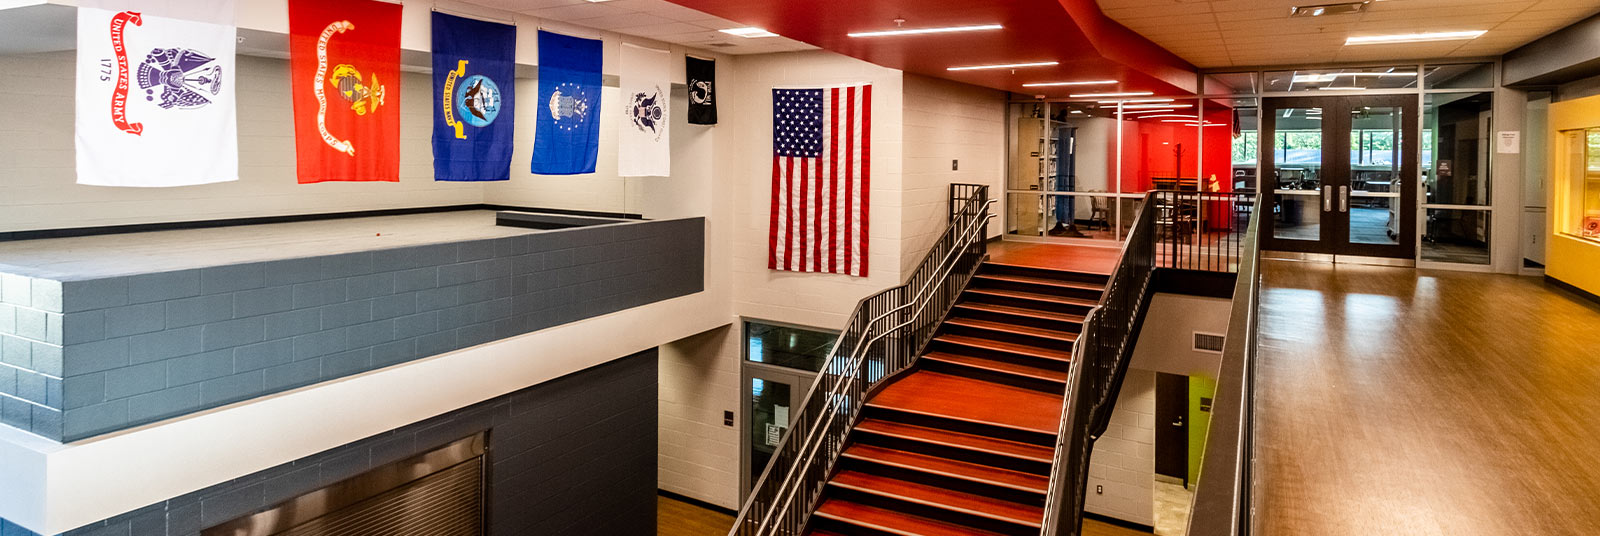 The cantilevered staircase at Amity Elementary in Deer Park, Ohio.